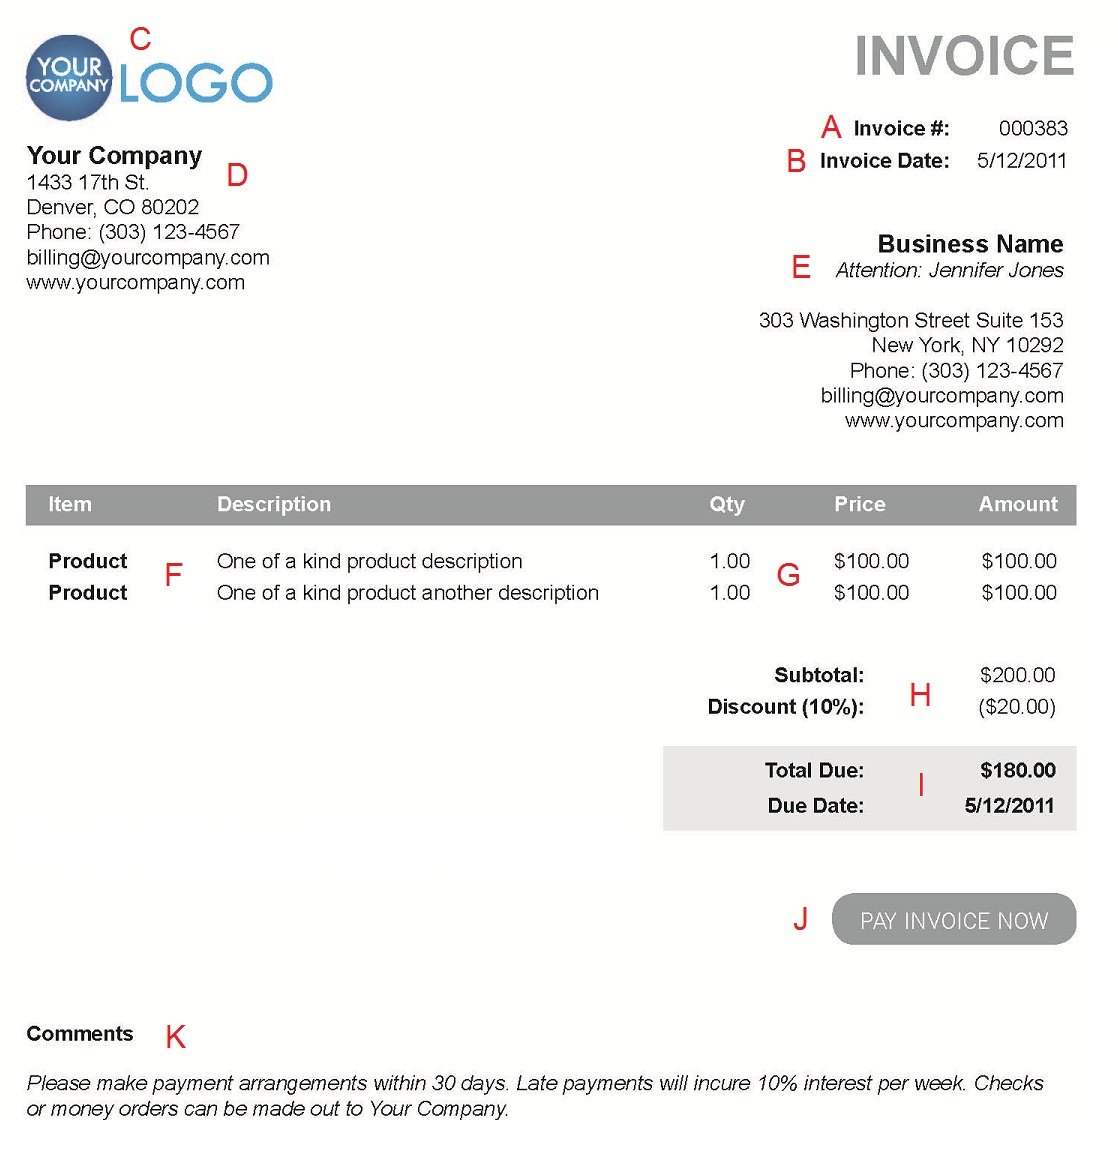 Ebitus  Seductive The  Different Sections Of An Electronic Payment Invoice With Inspiring A  With Extraordinary Consulting Invoice Template Word Also Quickbooks Invoice Payment In Addition Invoice For Contractors And Pre Invoice Template As Well As Invoice To Go Help Additionally Electrical Invoice From Paysimplecom With Ebitus  Inspiring The  Different Sections Of An Electronic Payment Invoice With Extraordinary A  And Seductive Consulting Invoice Template Word Also Quickbooks Invoice Payment In Addition Invoice For Contractors From Paysimplecom